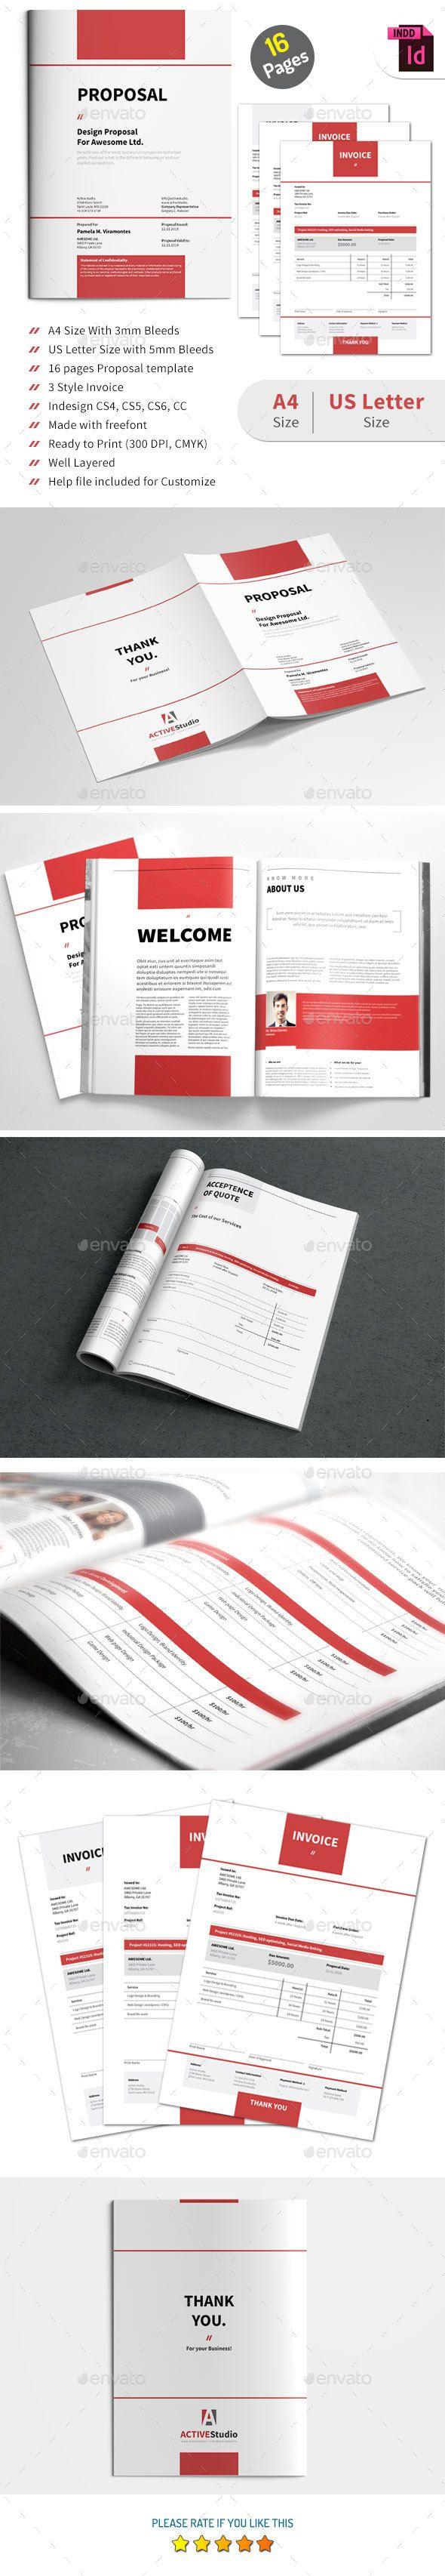 #Proposal - Proposals & #Invoices #Stationery